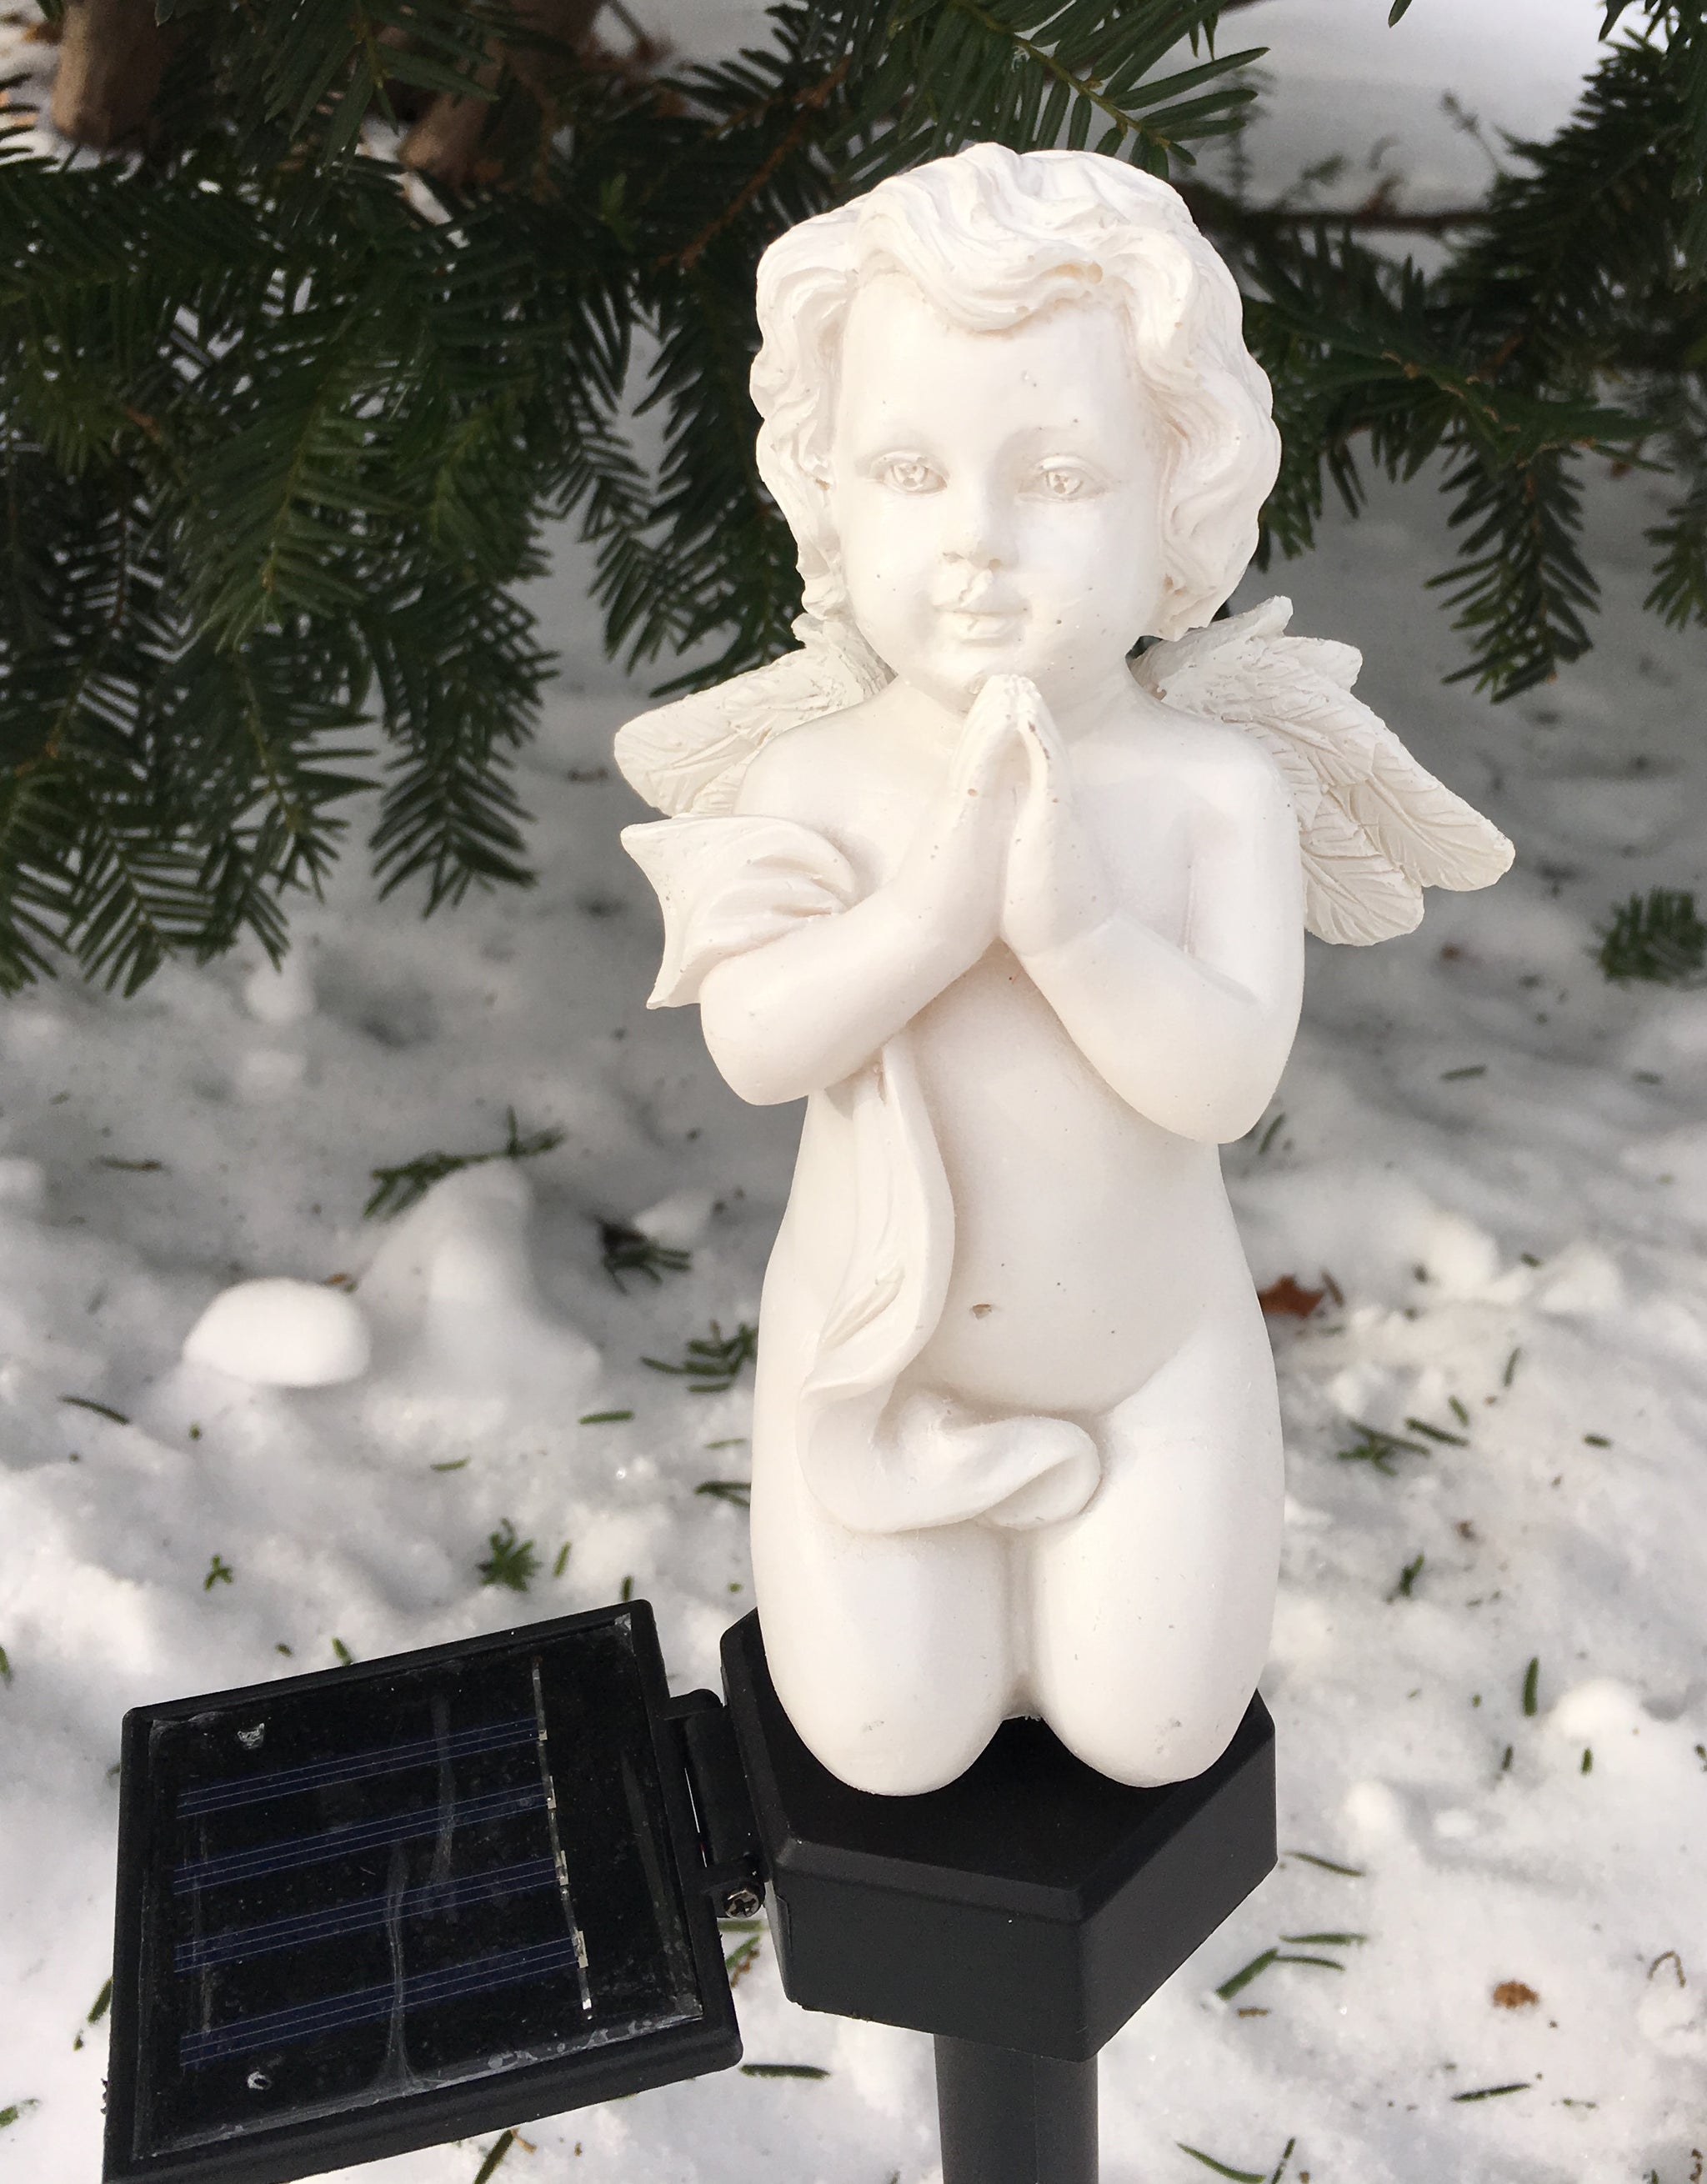 Solar Cherub Cupid Angel Light Garden Pathway Stake Outdoor Decor Landscape Color Change LED Lamp